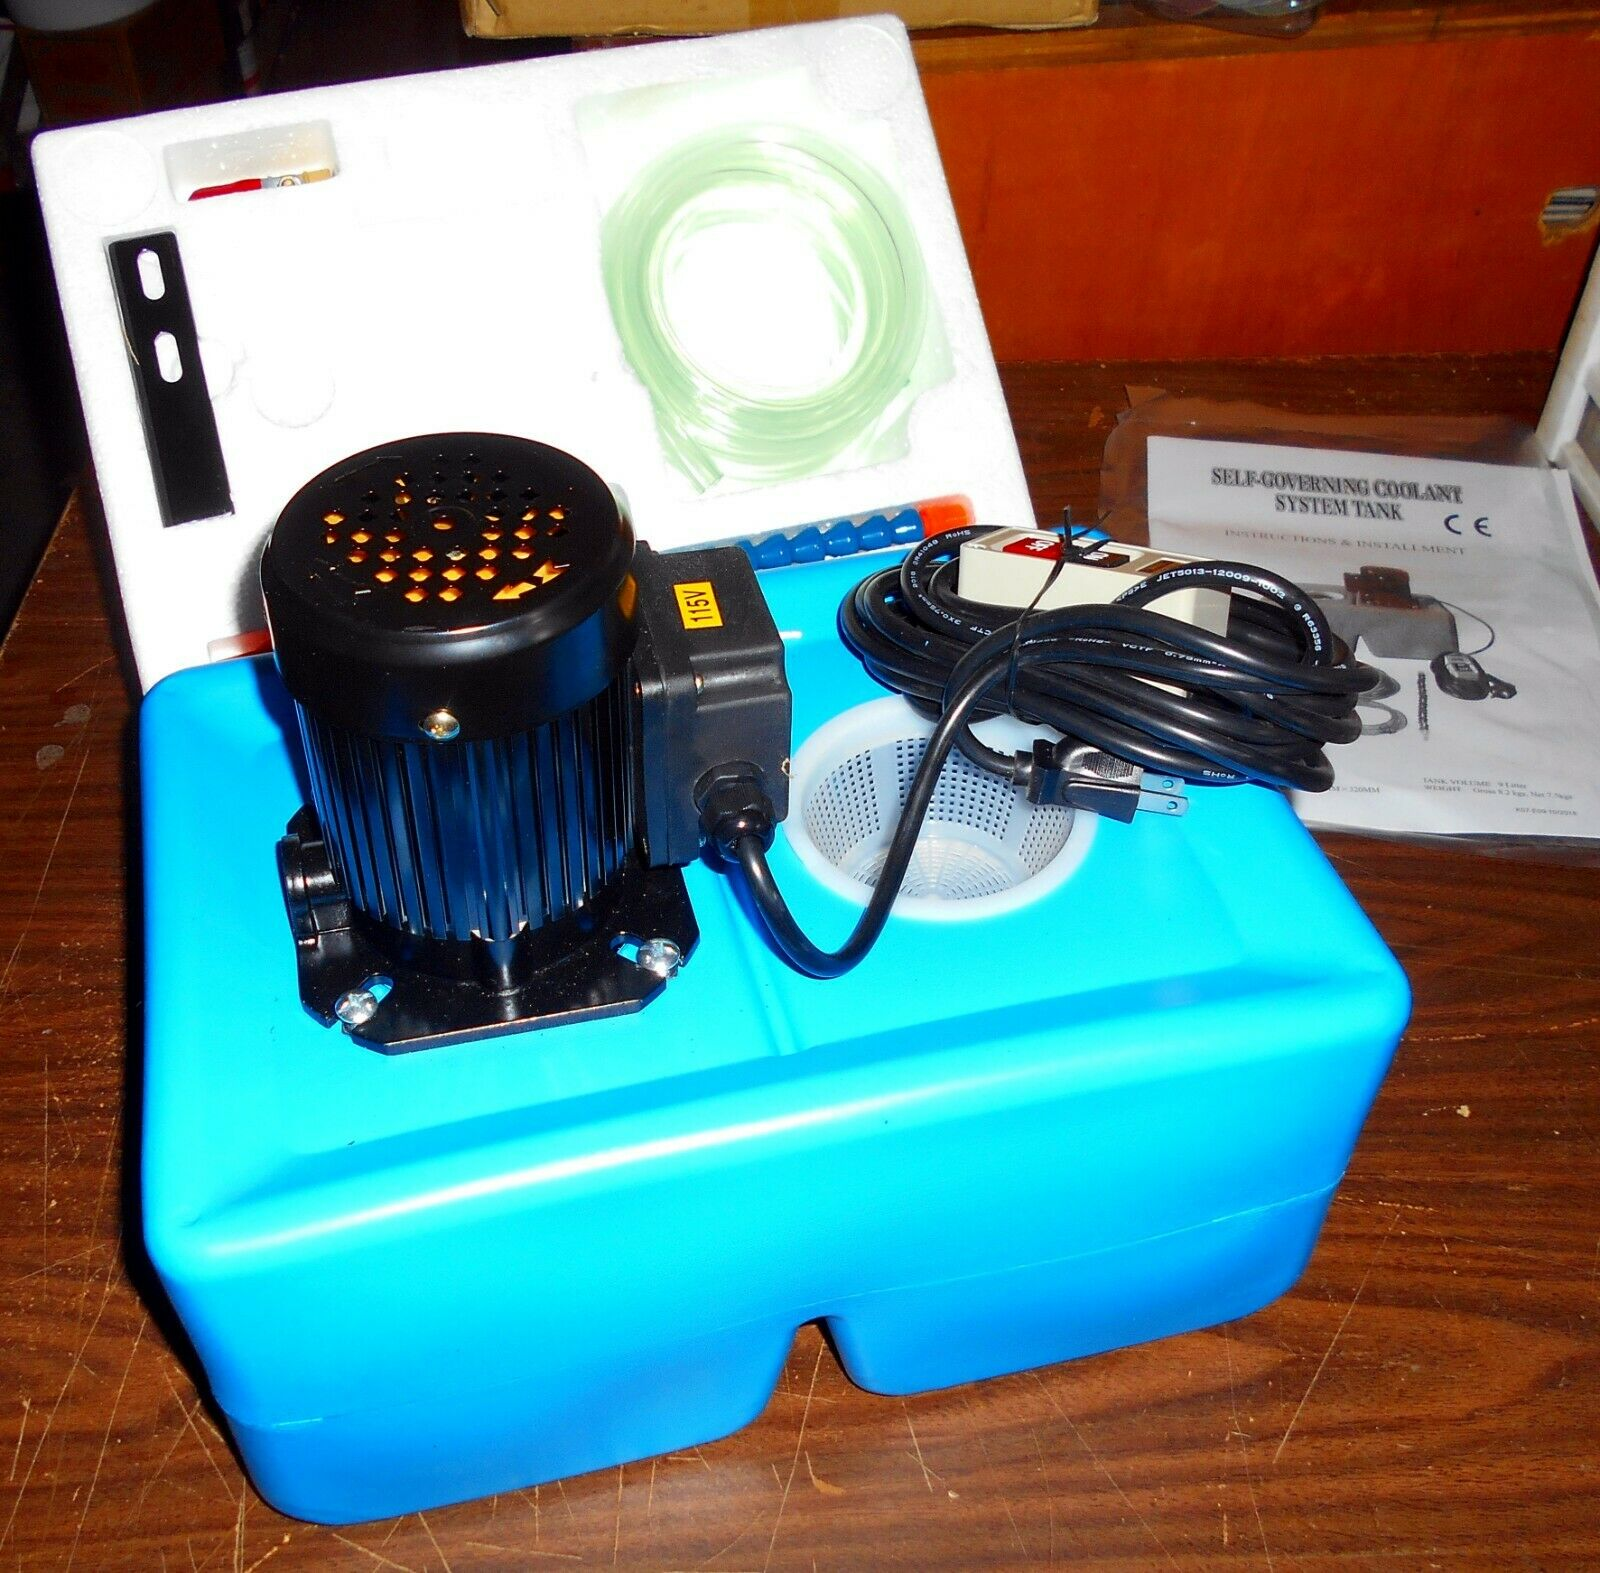 ACCURA/VERTEX  ACPS-009 COOLANT PUMP SYSTEM FOR LATHES, MILL